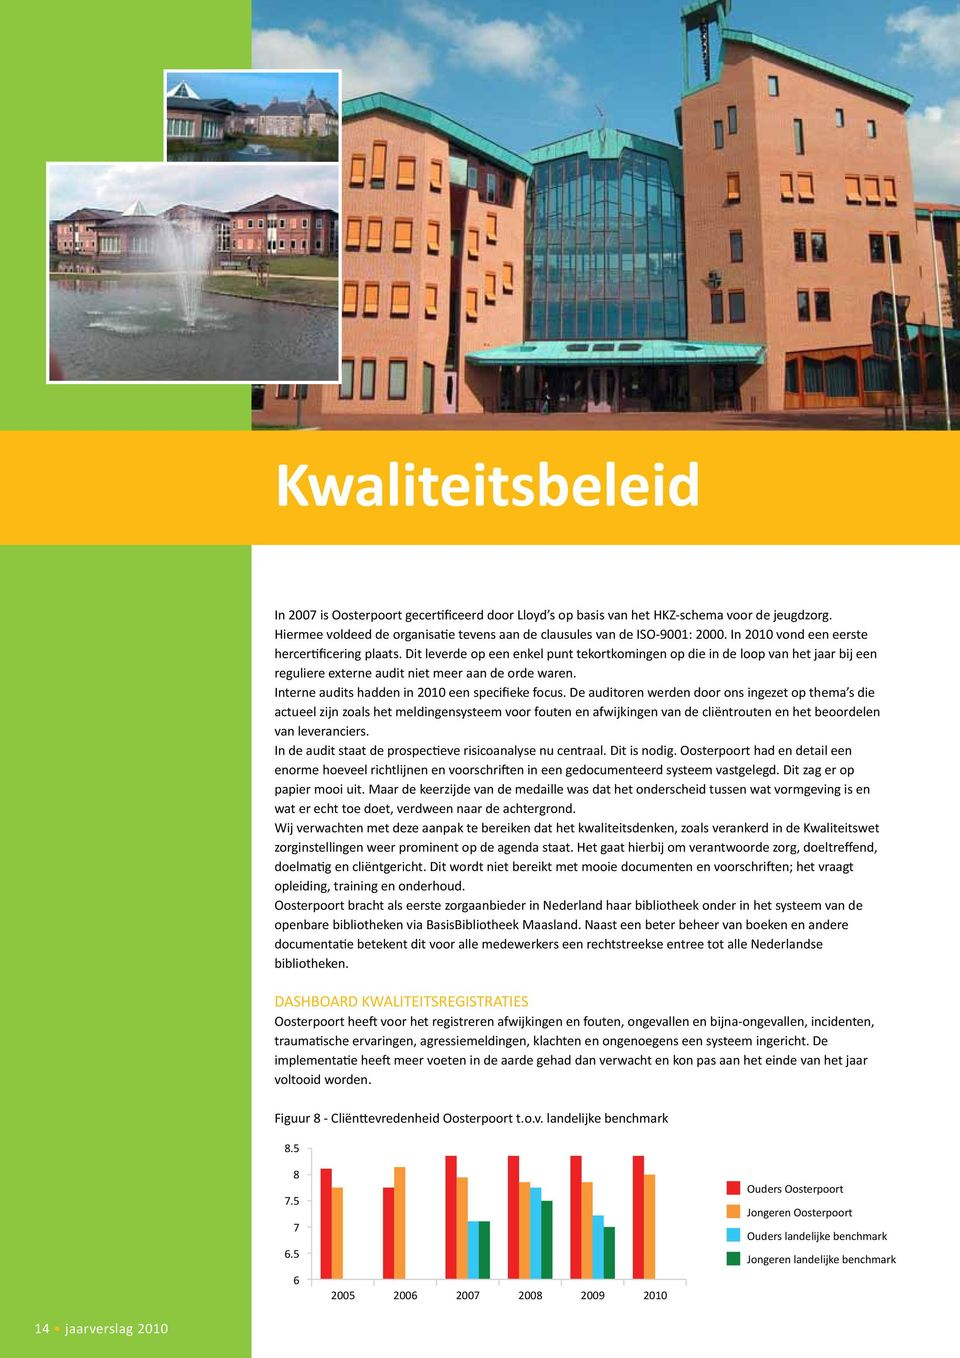 Interne audits hadden in 2010 een specifieke focus.